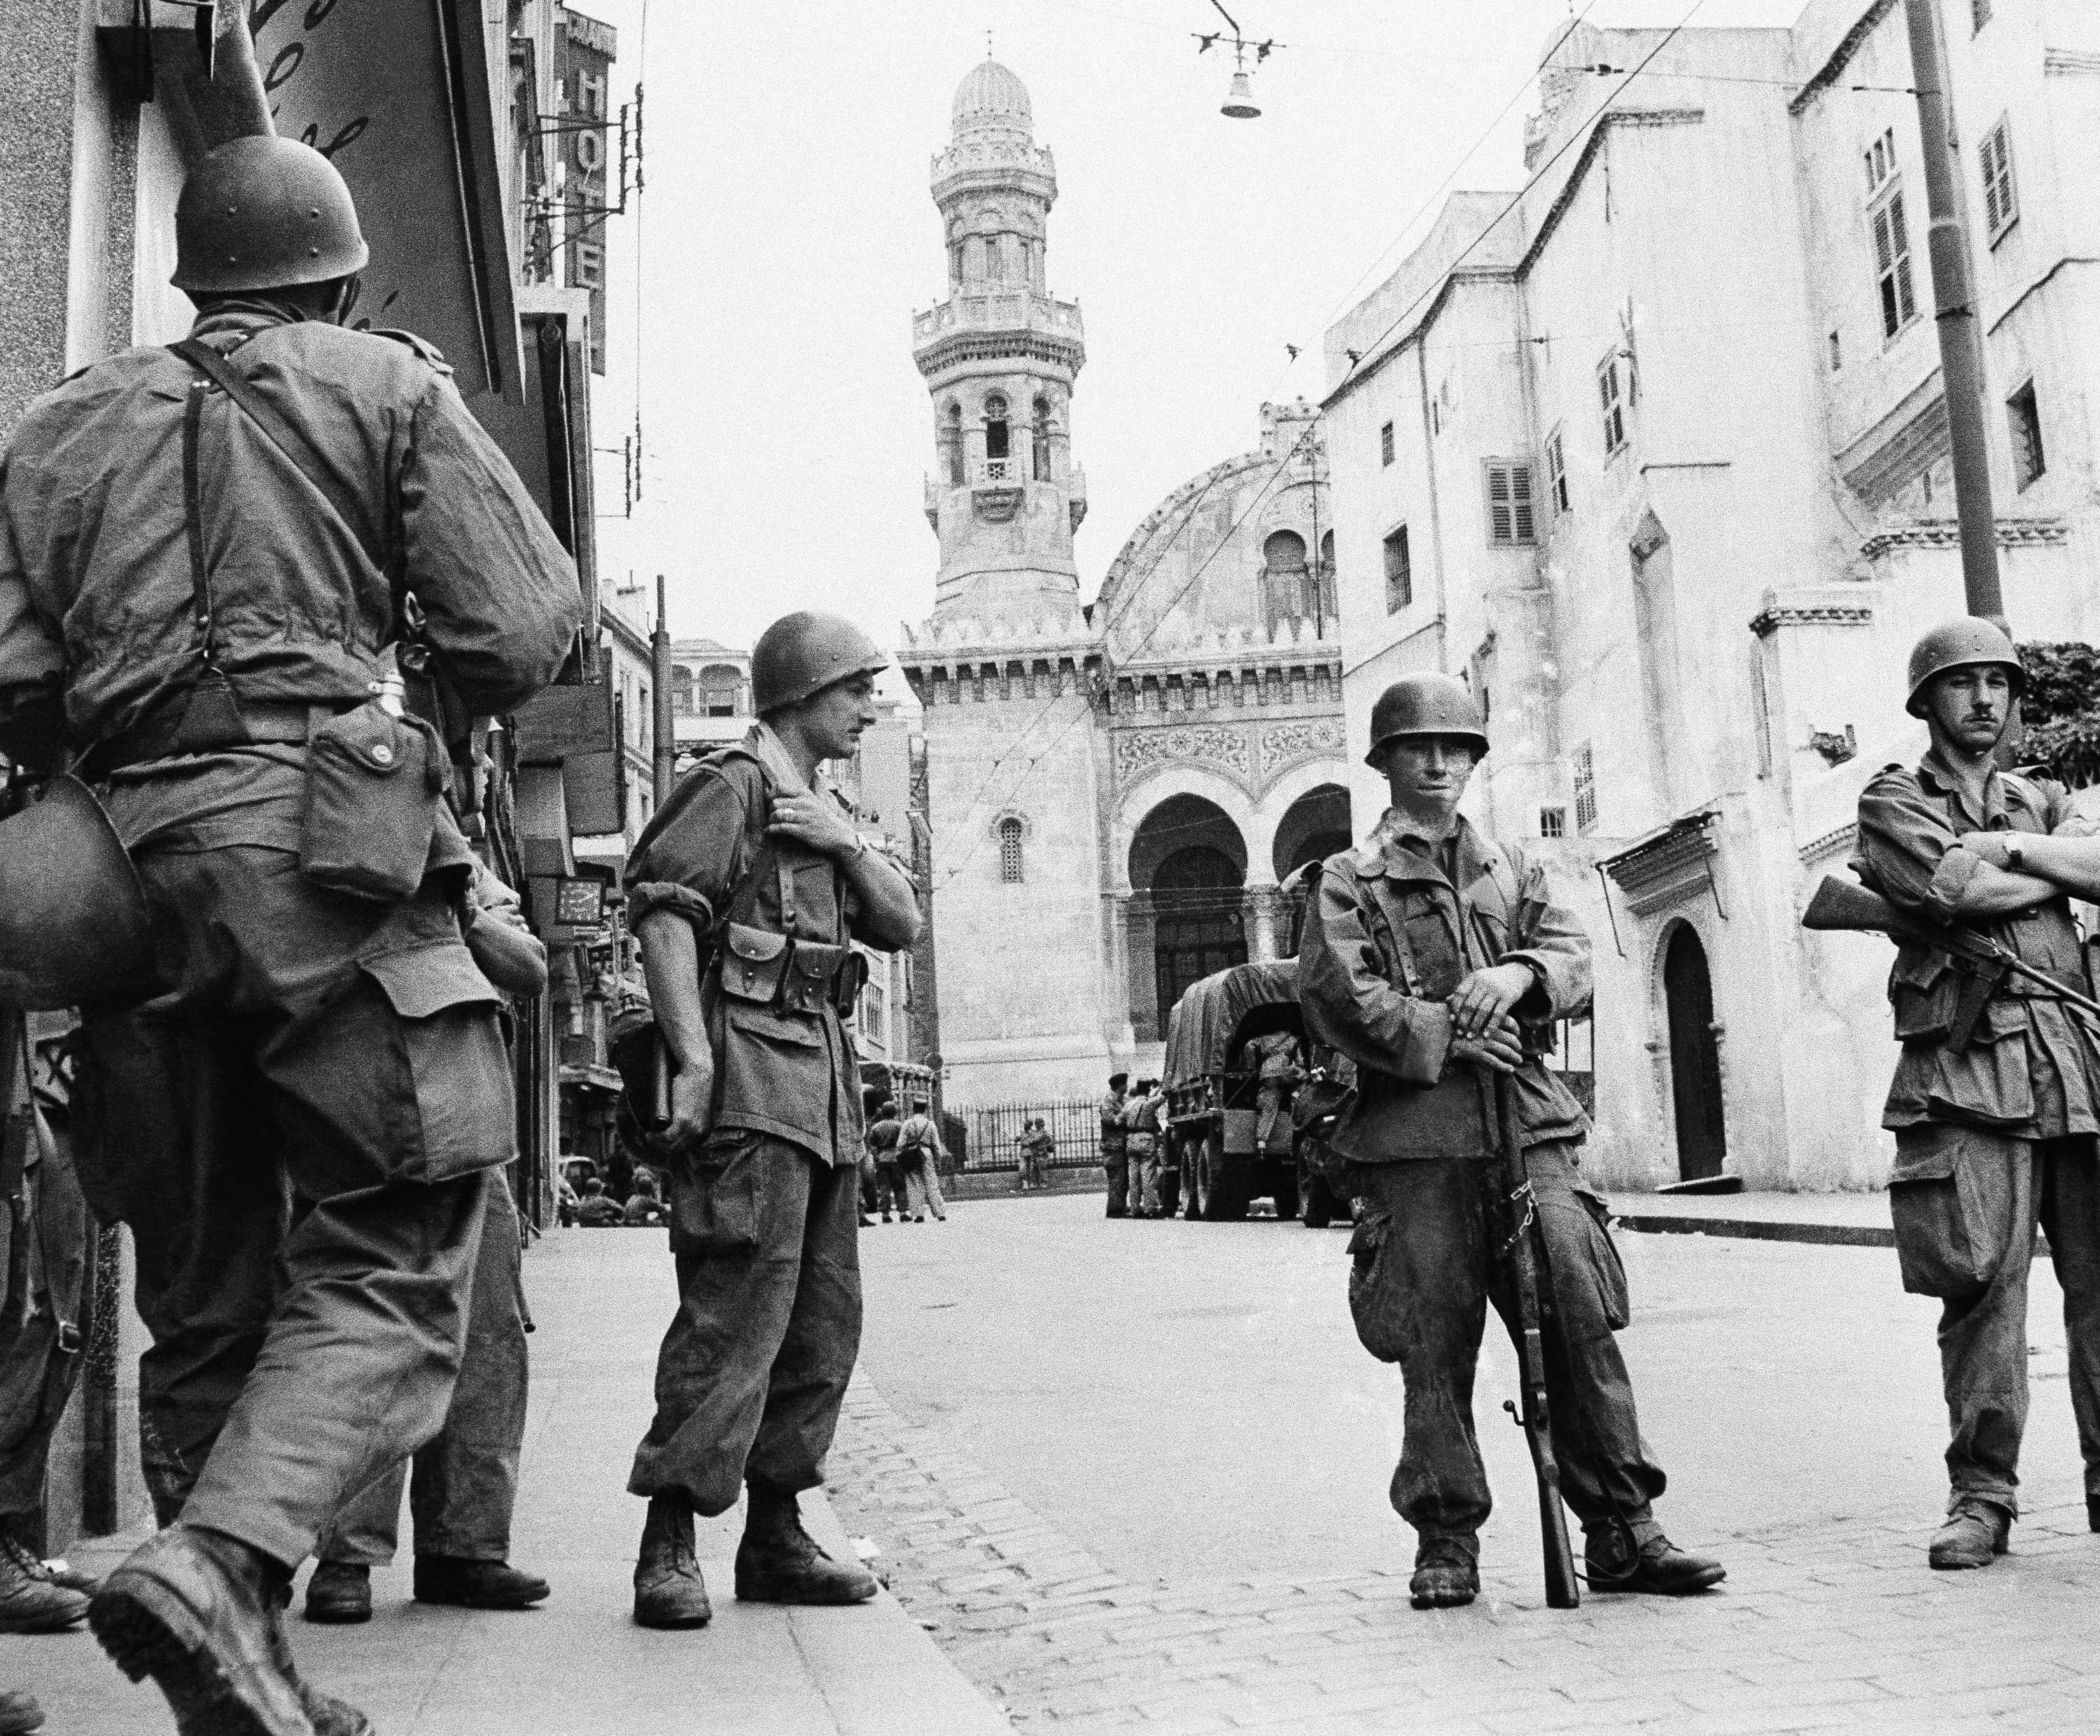 French troops seal off Algiers' casbah, the citadel of Algiers, in Algeria, May 27, 1956. (AP Photo)